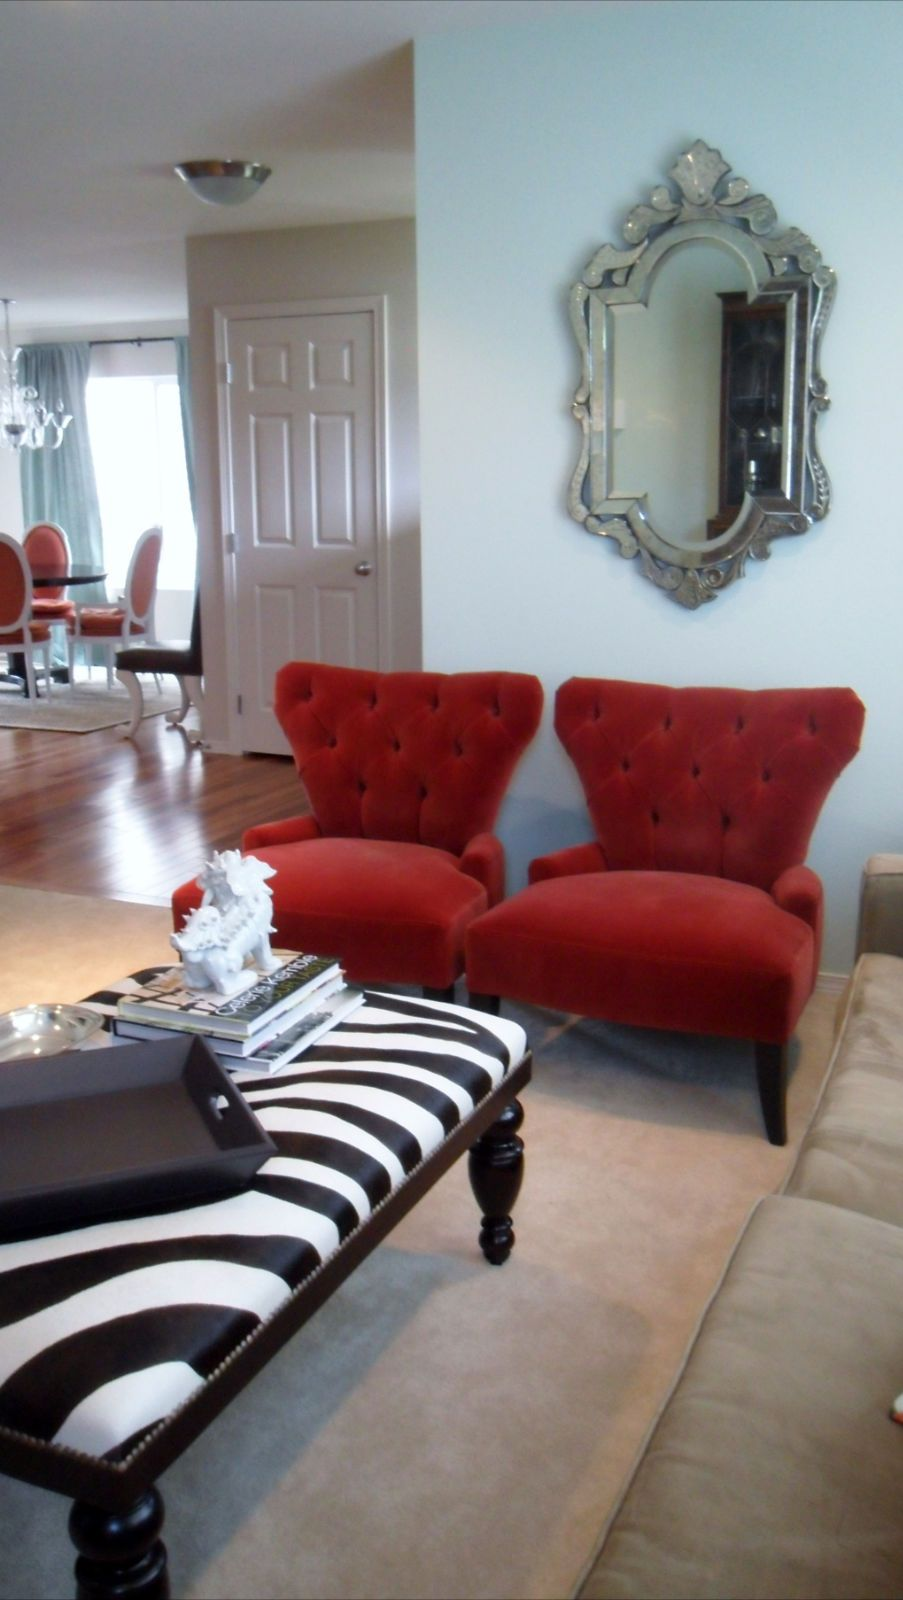 Red Rooms Decorating Living Room Love The Zebra Print And Red Accent Chairs